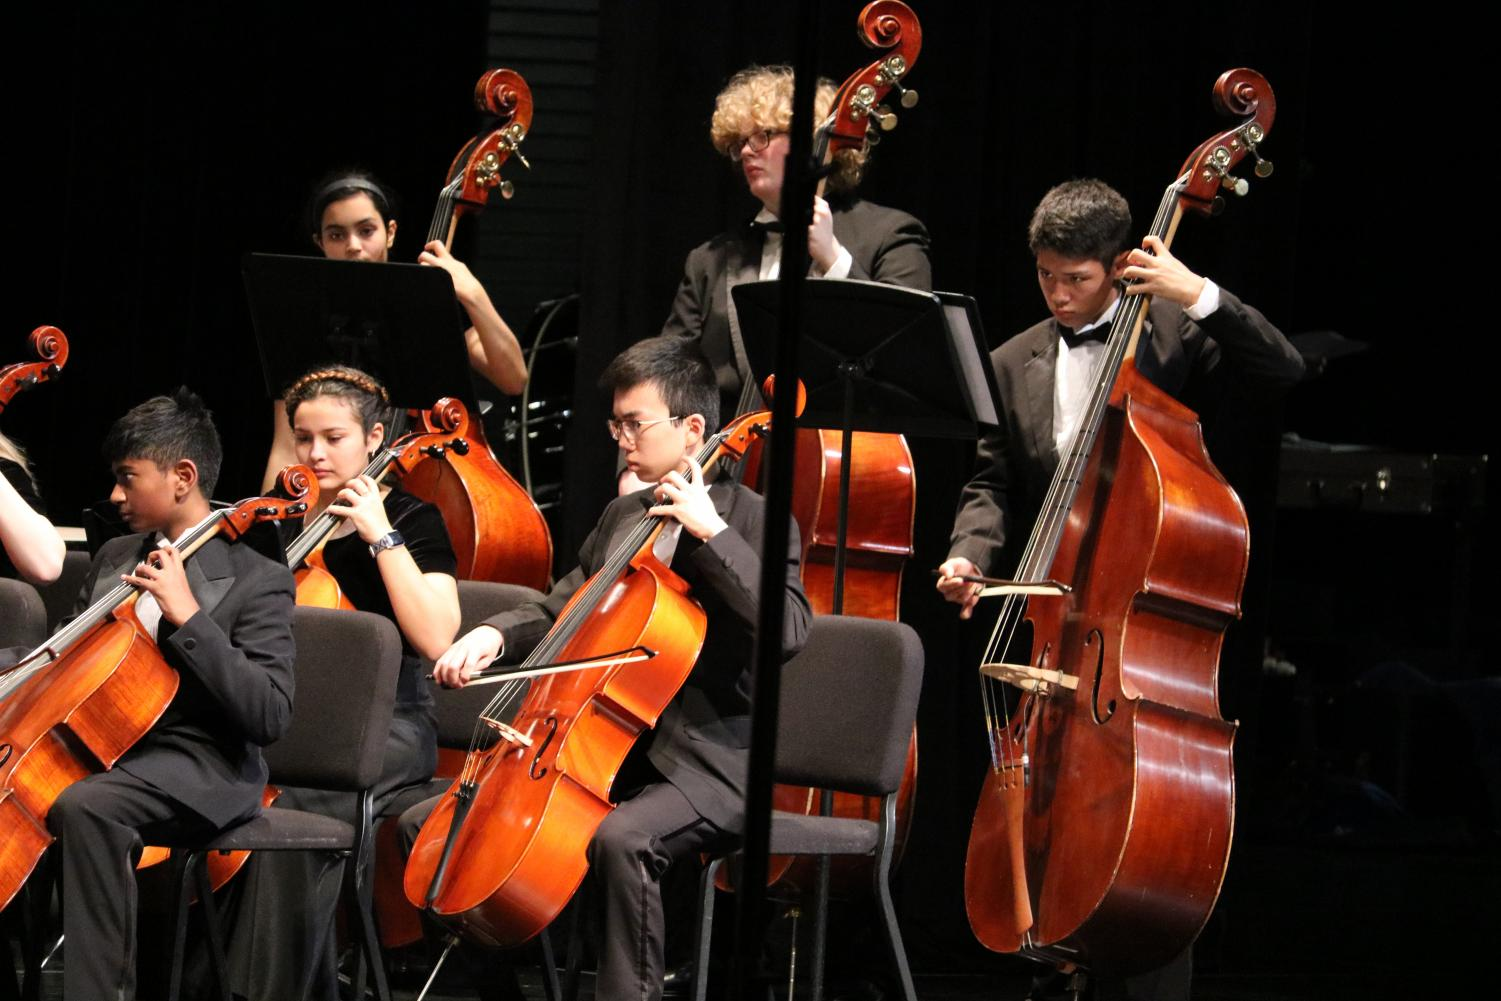 Orchestra+Students+Perform+at+Pre-UIL